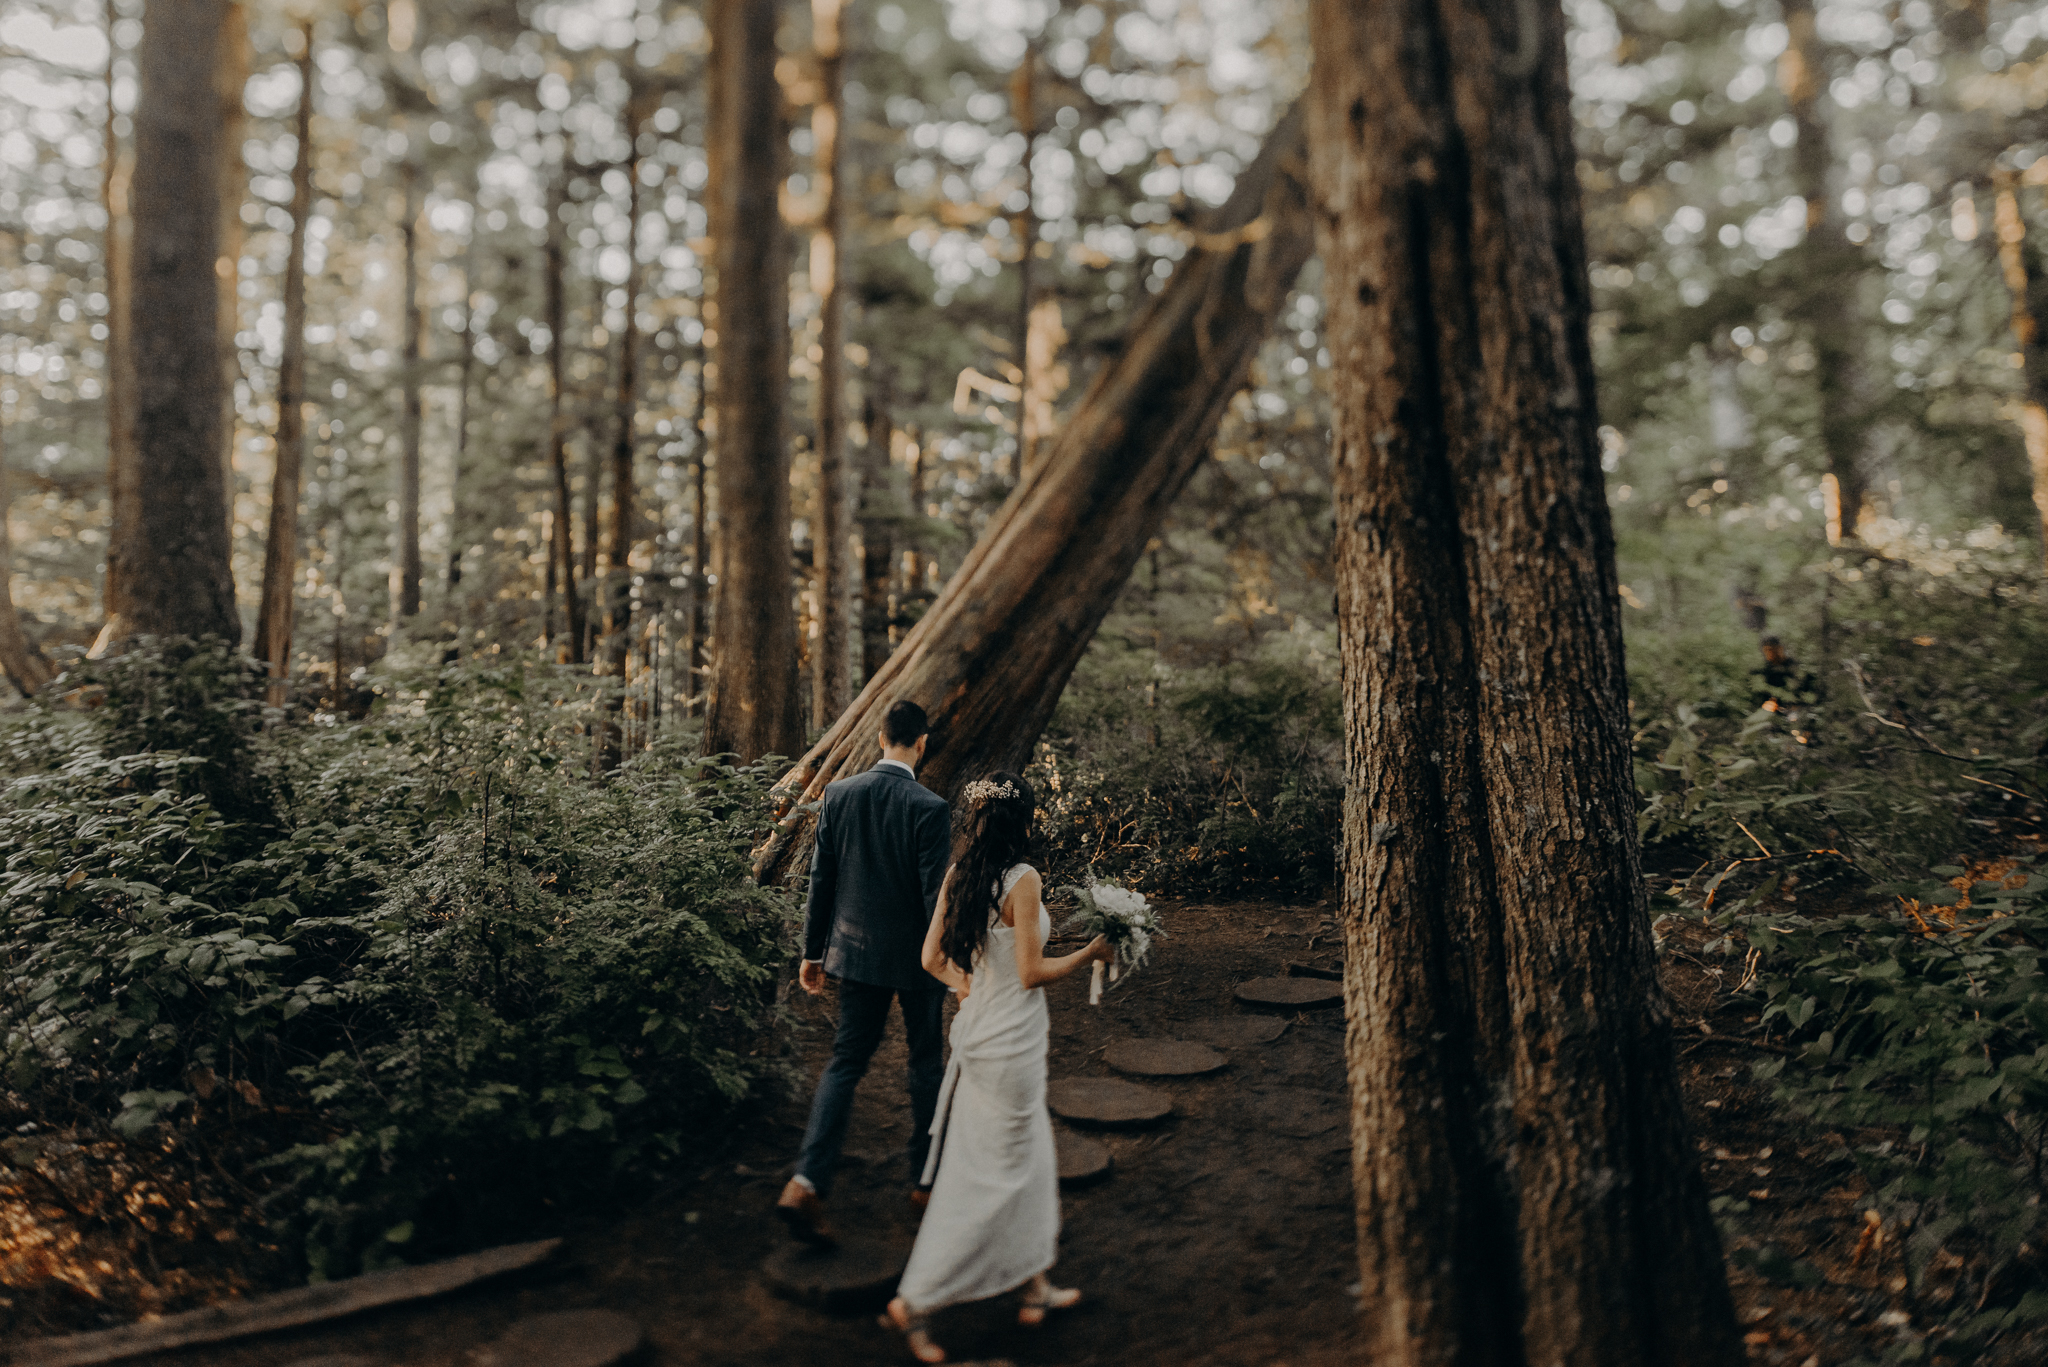 Isaiah + Taylor Photography - Cape Flattery Elopement, Olympia National Forest Wedding Photographer-124.jpg